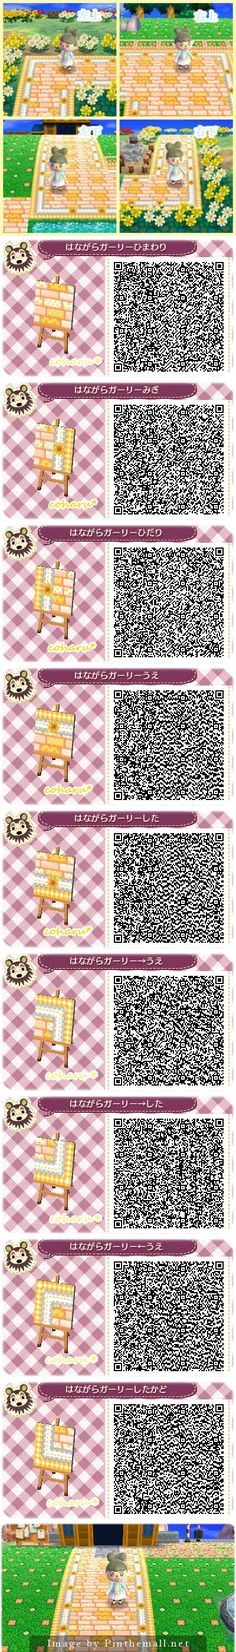 Yellow path QR codes